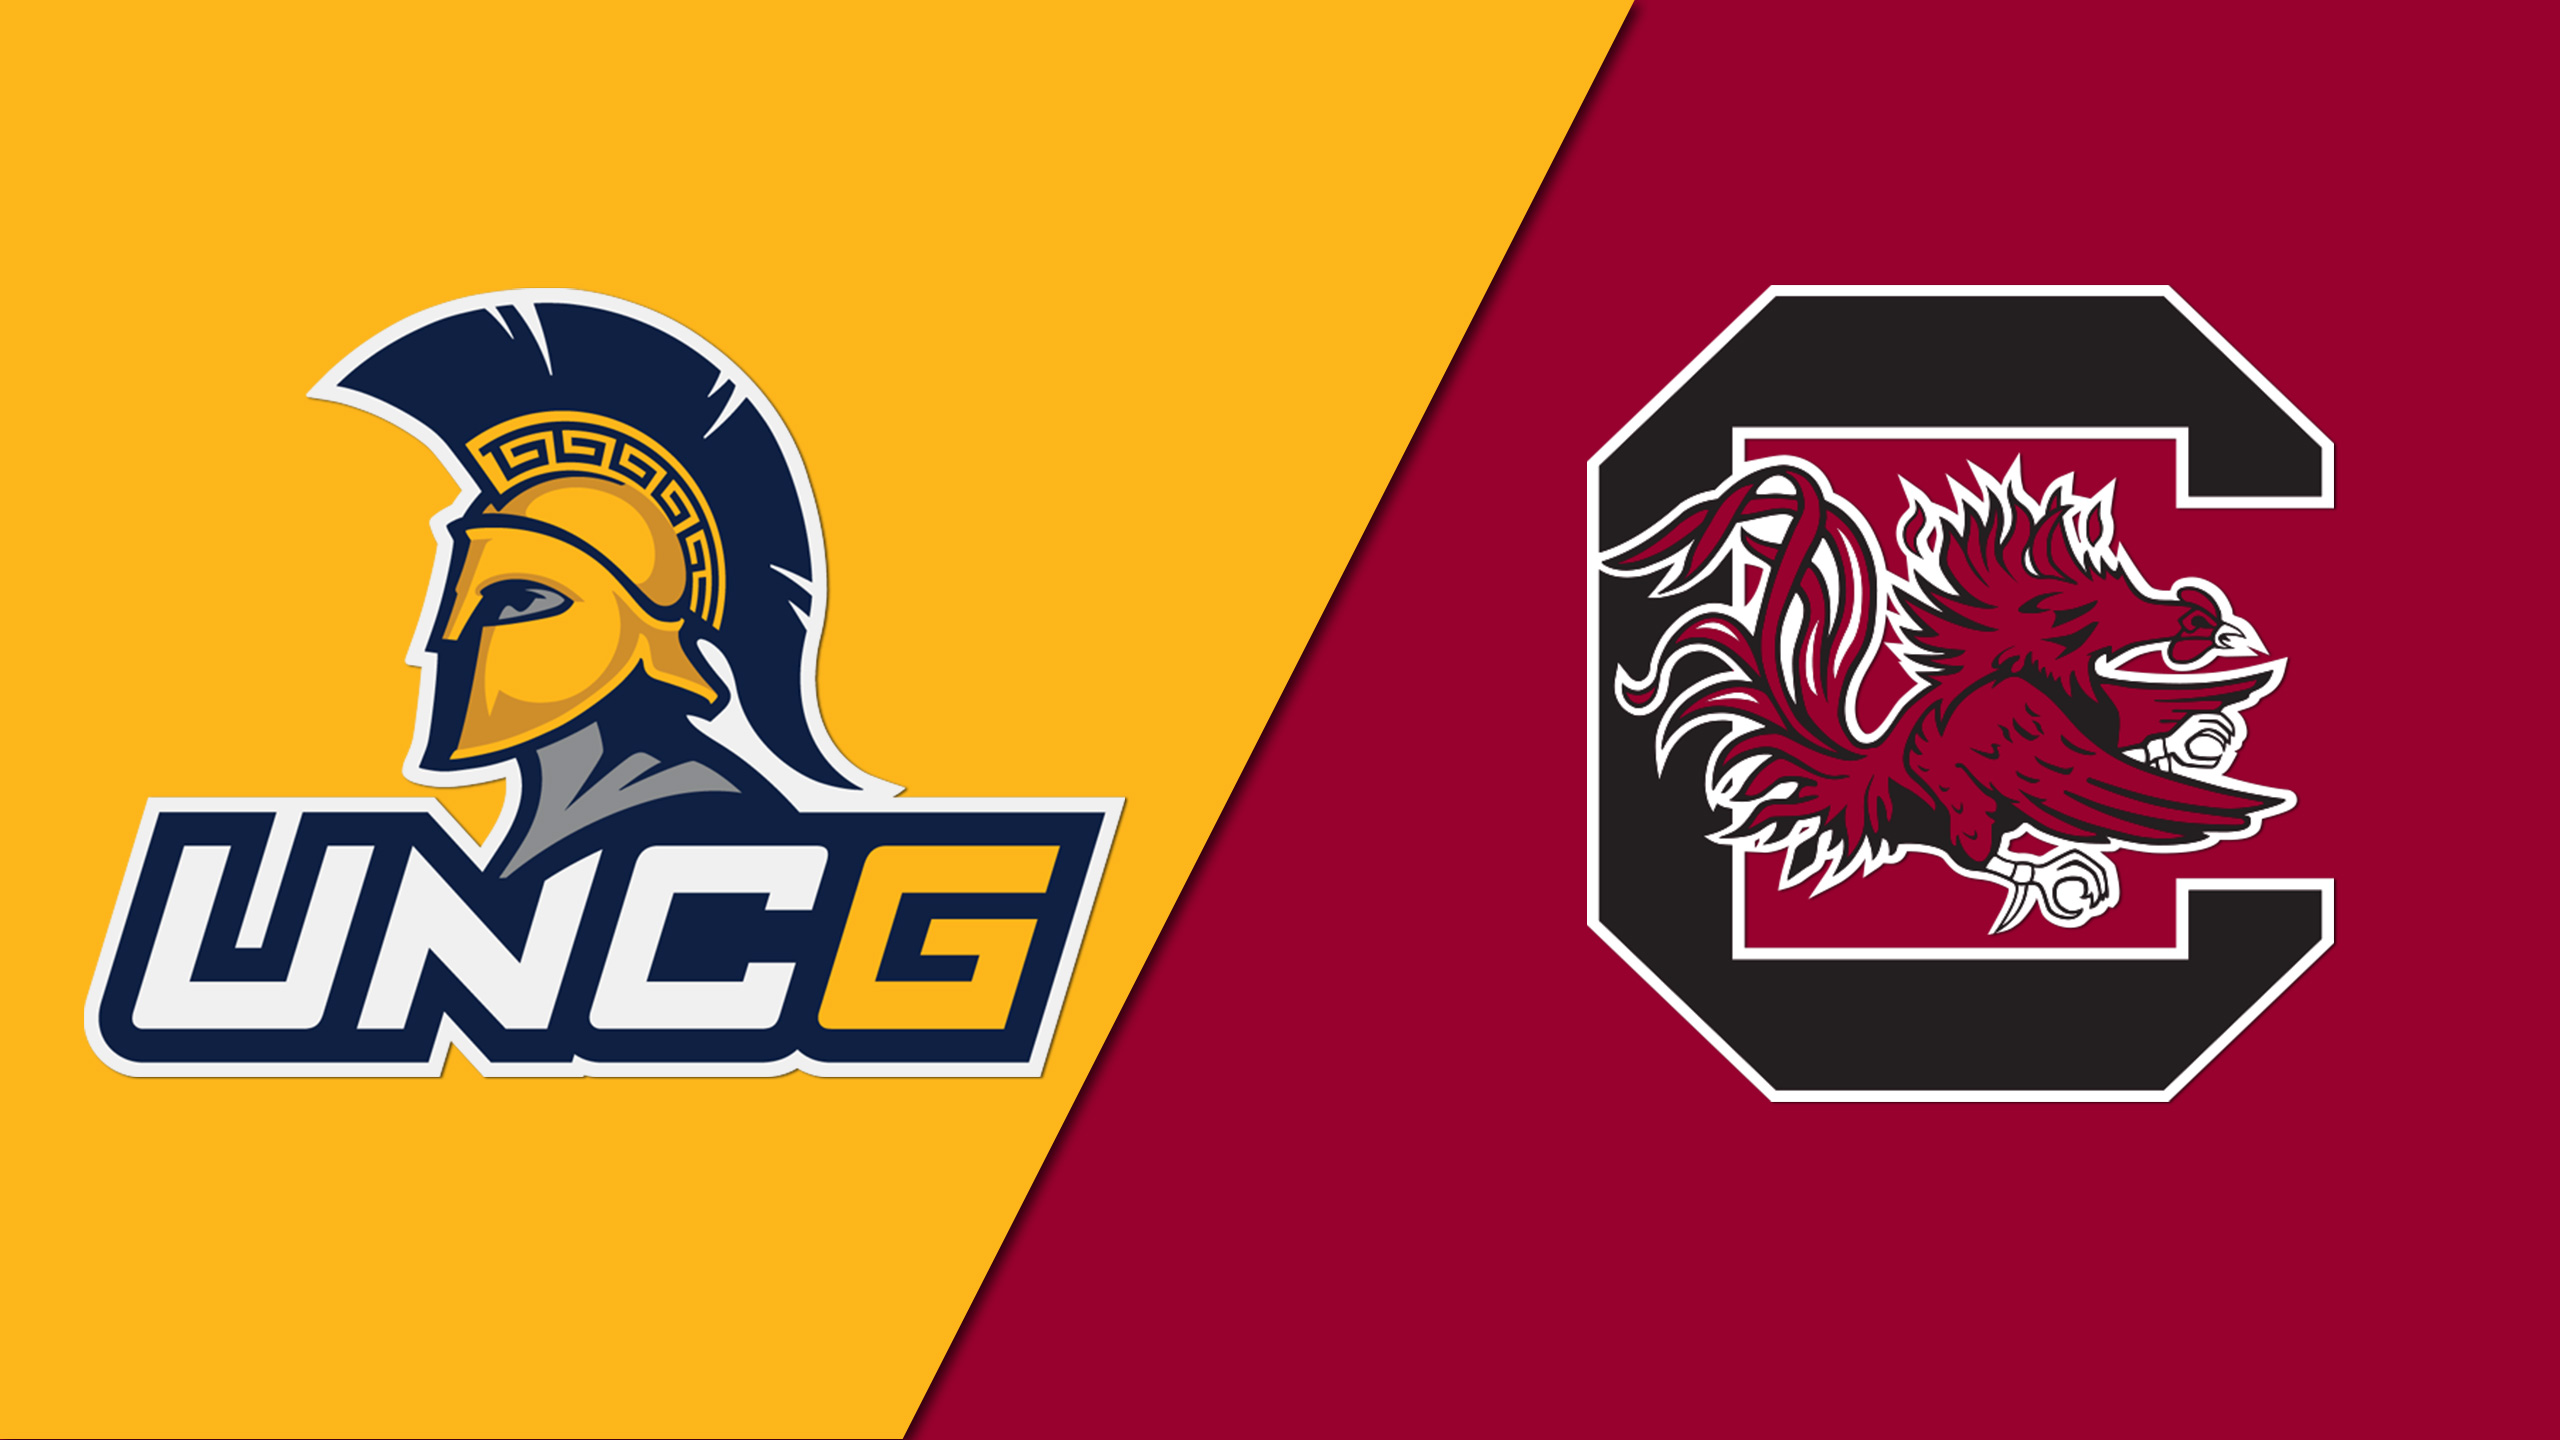 UNC-Greensboro vs. #3 South Carolina (First Round) (NCAA Division I Women's Soccer Championship)